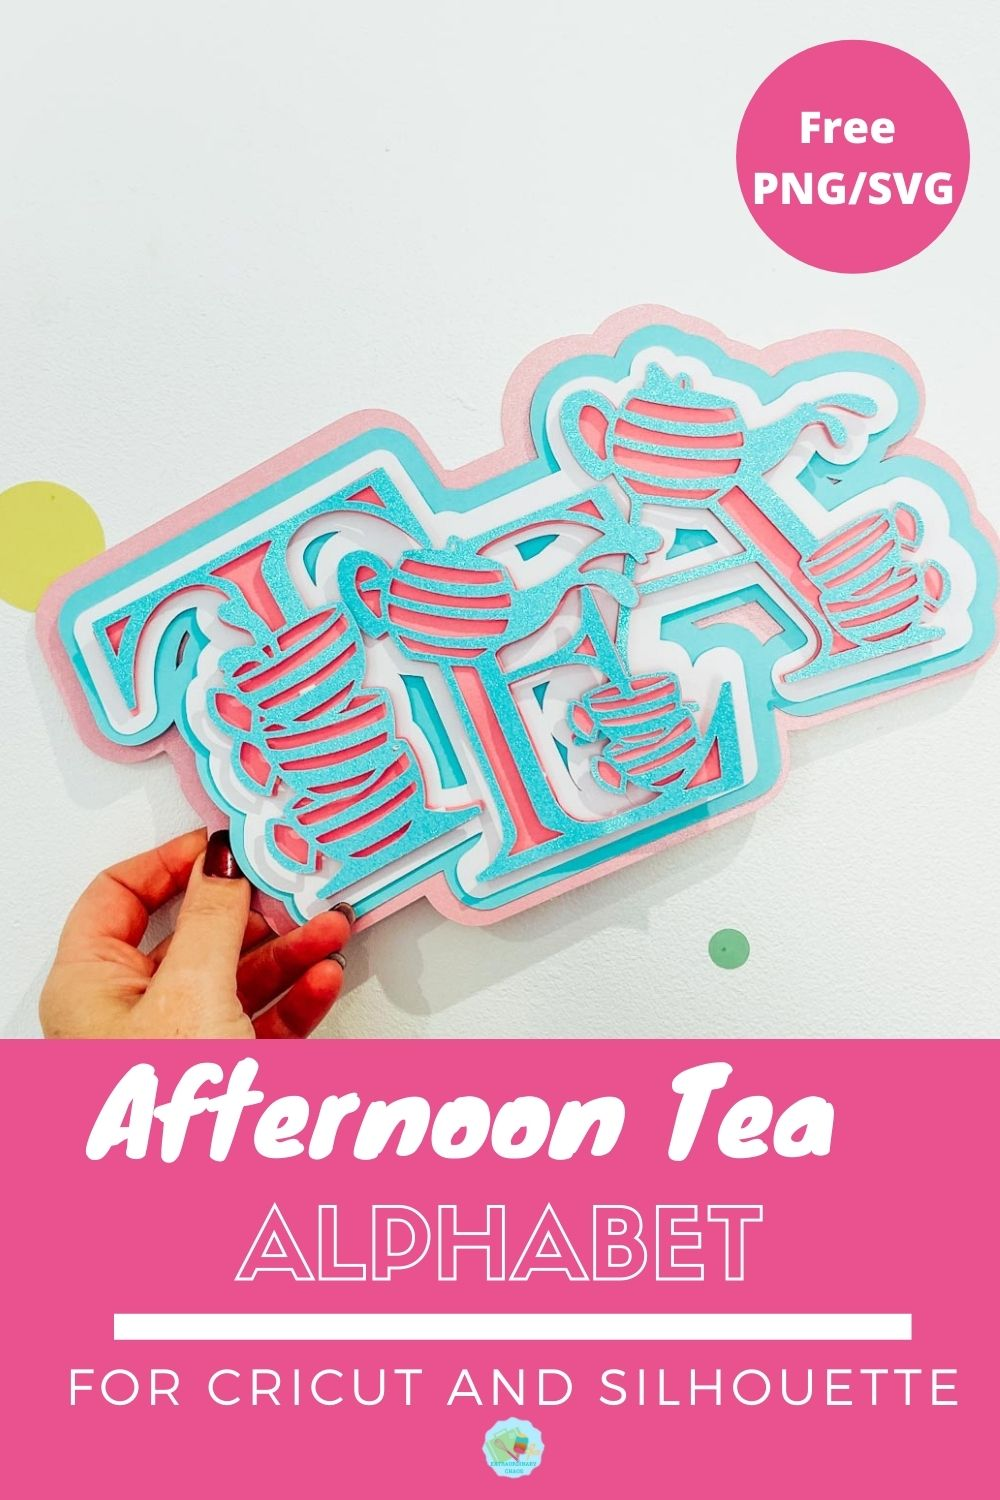 Free Afternoon Tea Alphabet SVG for Cricut And Silhouette -2